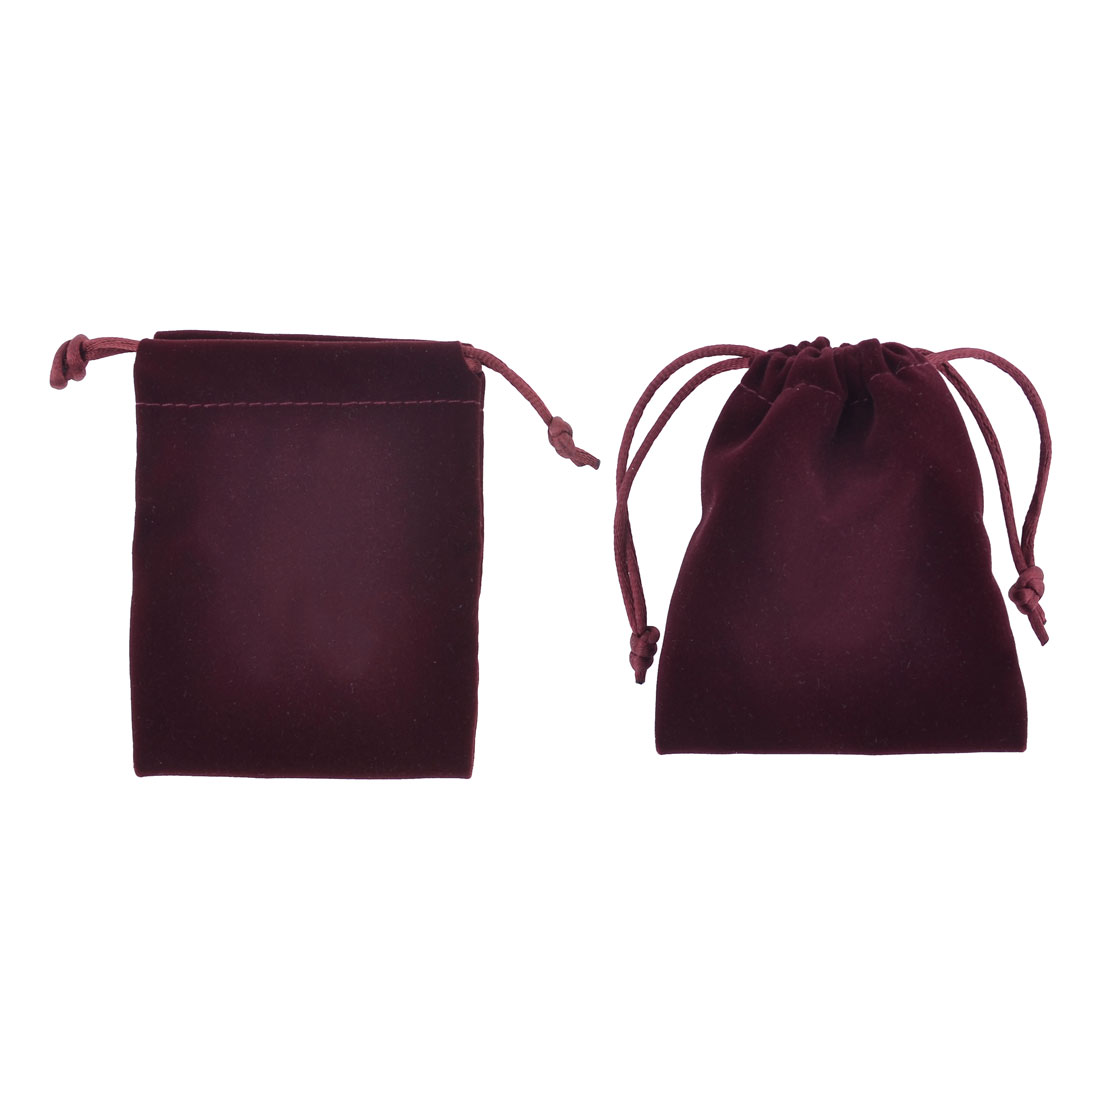 2 Pcs Pull String Closured Burgundy Protective MP4 Keys Bag Pouch